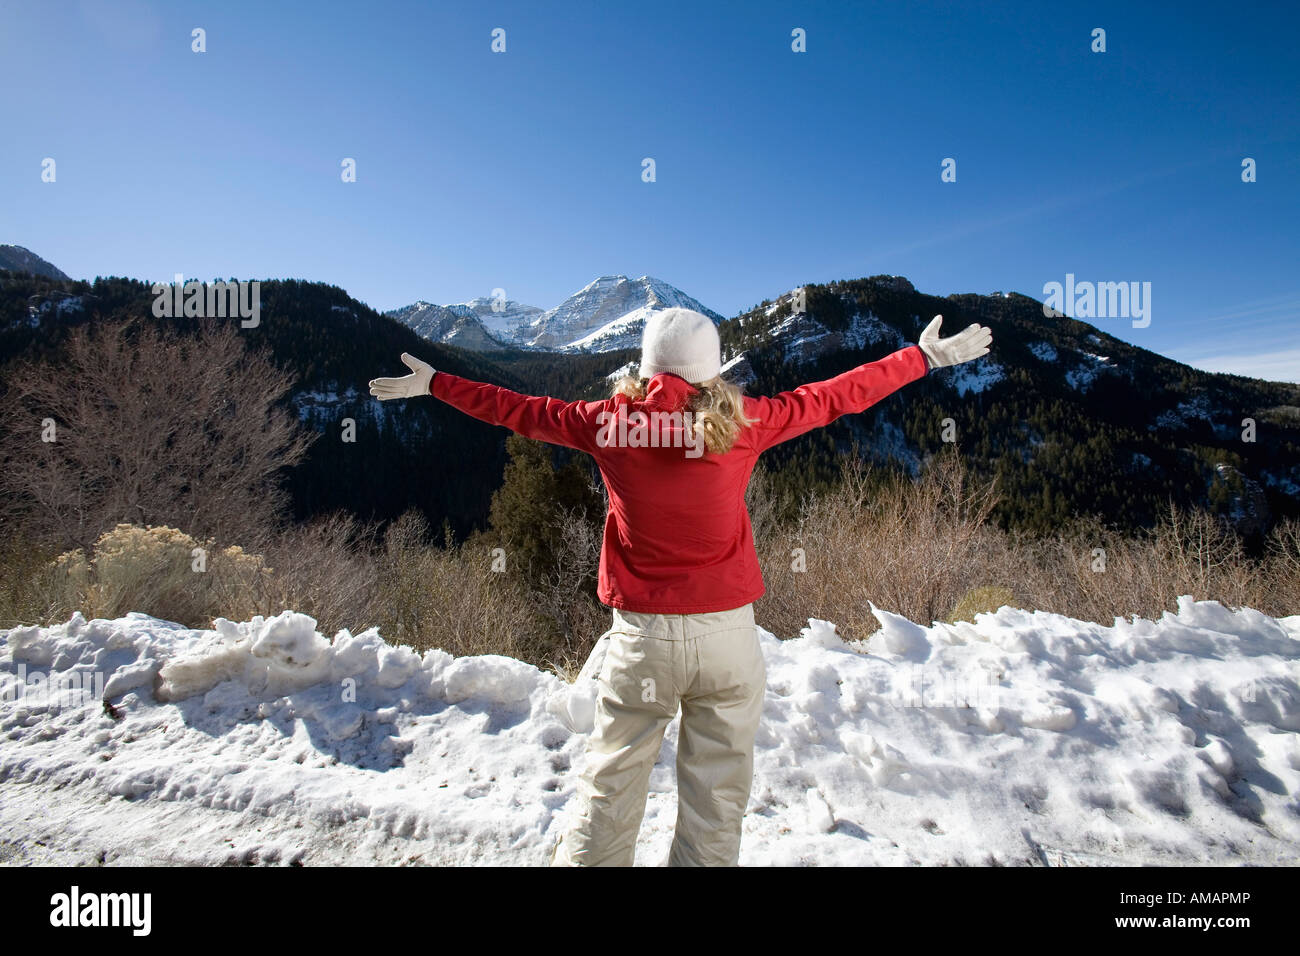 A woman looking at the mountains with her arms outstretched - Stock Image